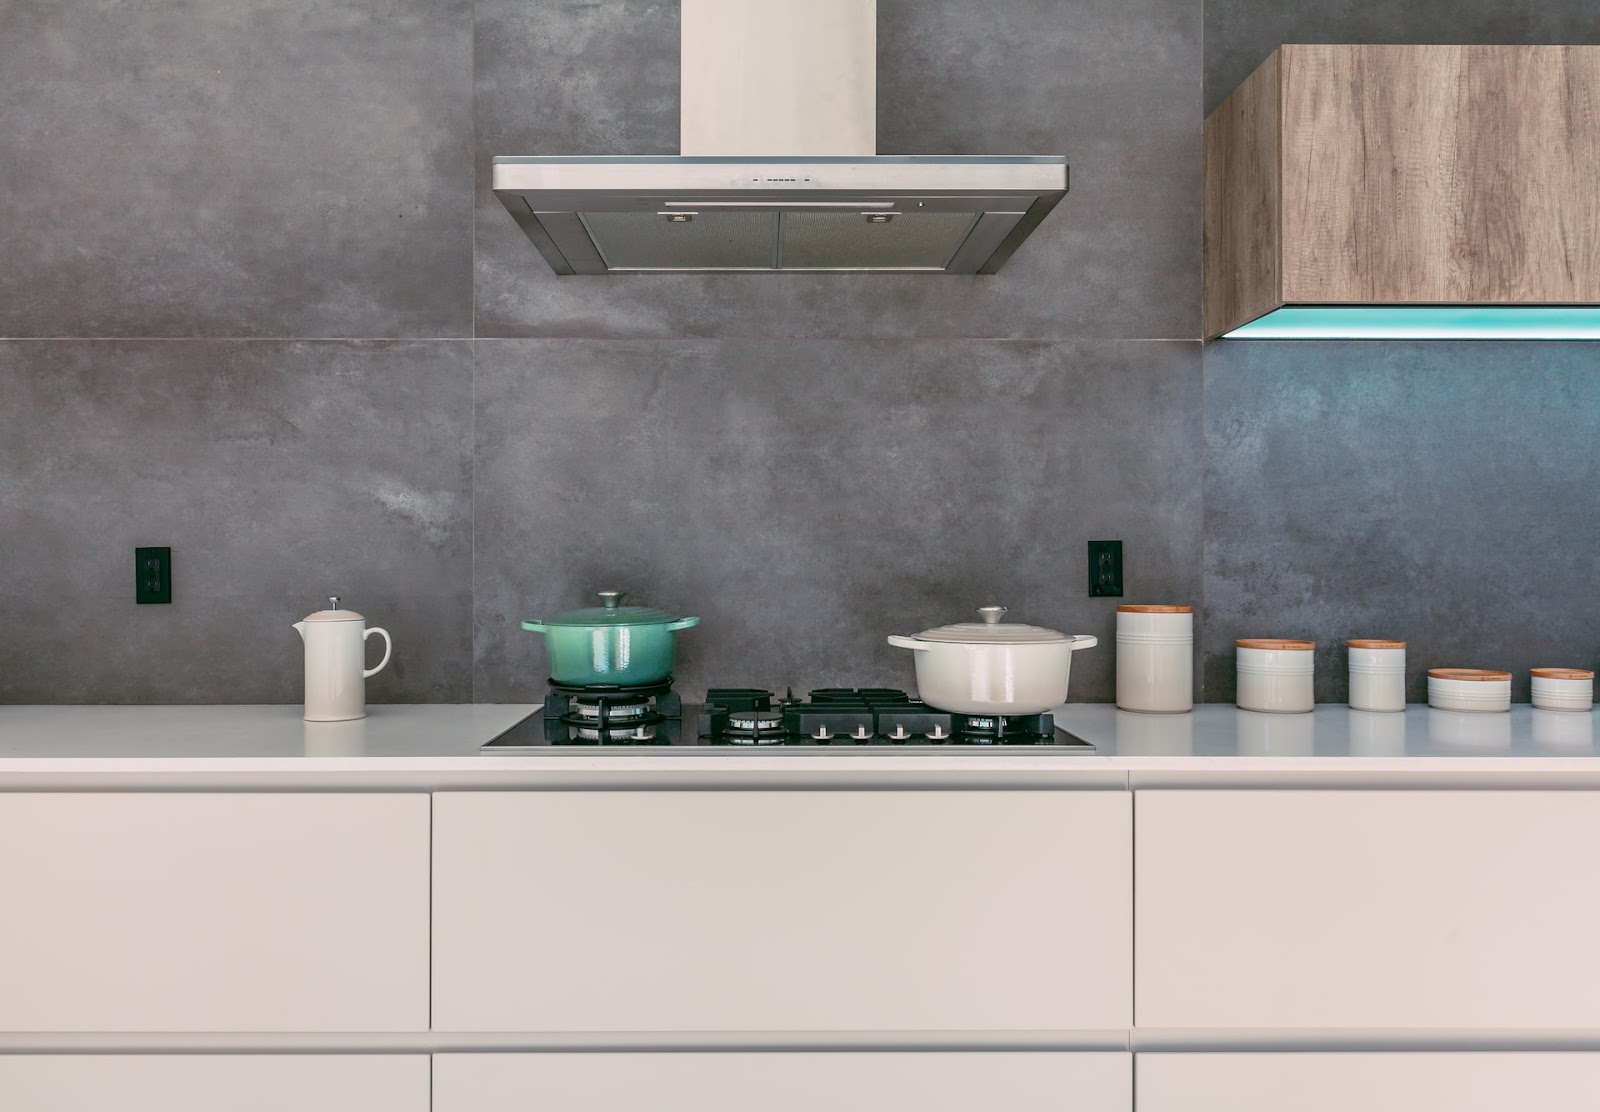 Contemporary handleless kitchen design; handleless drawer, cooker hood and sleek utensils placed in a modern kitchen with grey splashback